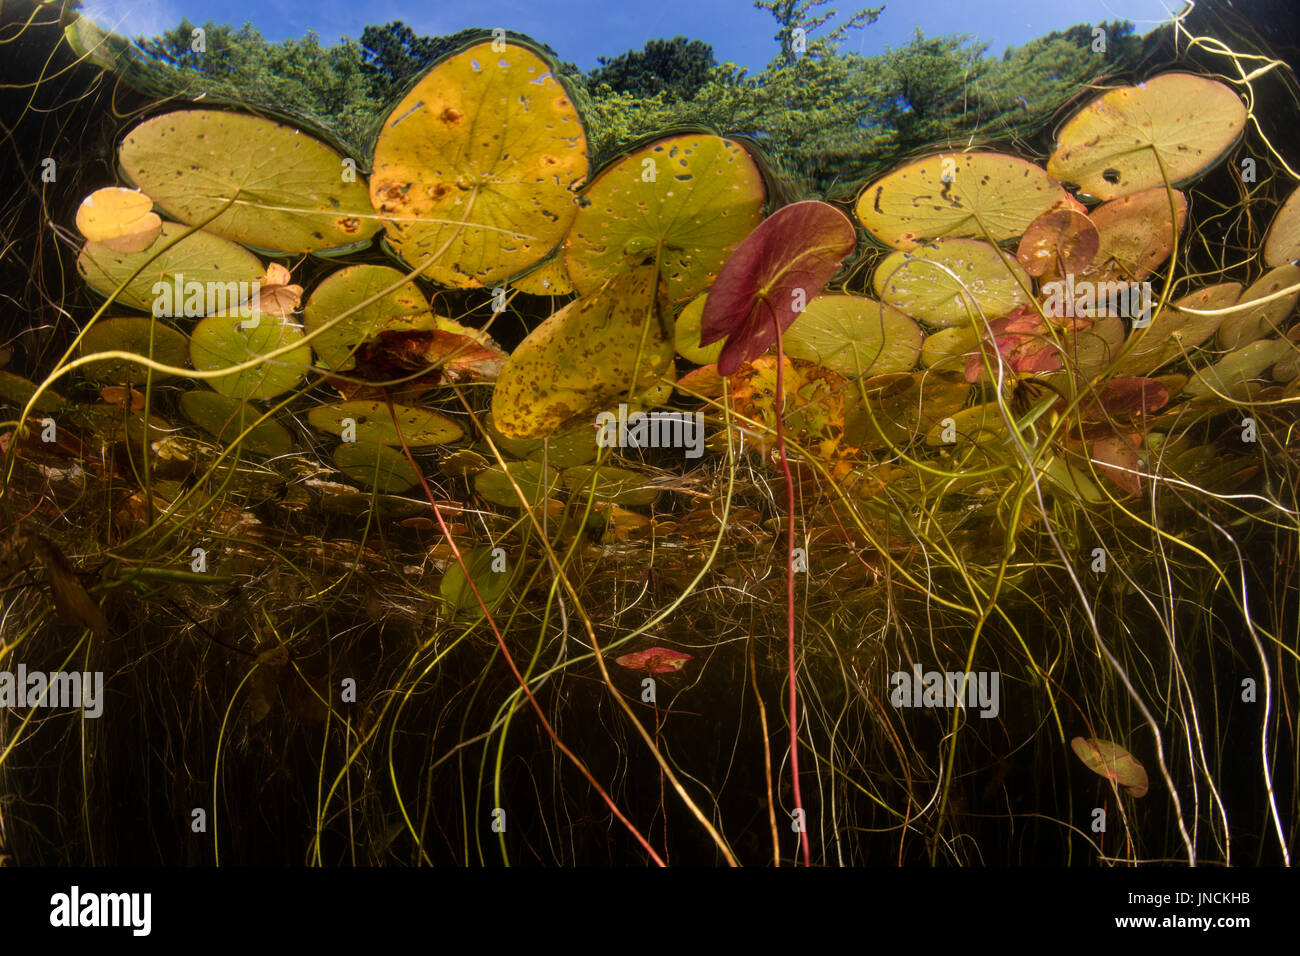 Lily pads grow at the edge of a freshwater pond on Cape Cod, Massachusetts. This beautiful New England peninsula - Stock Image